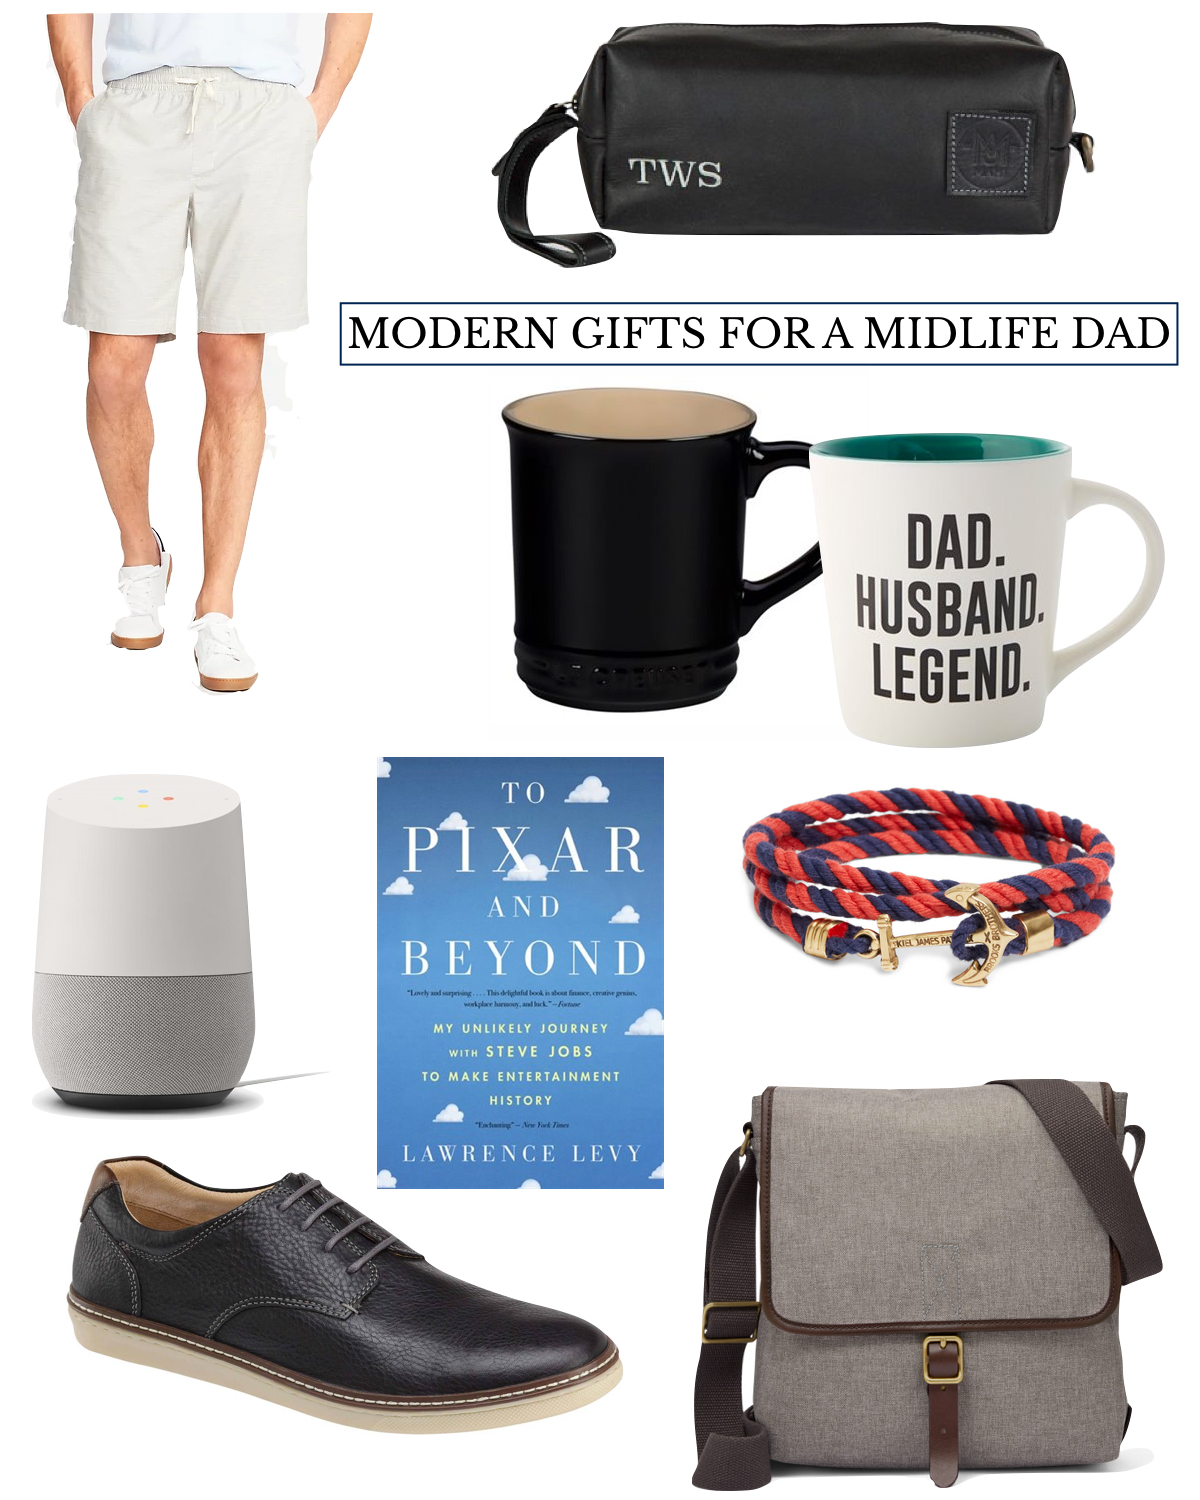 modern gifts for midlife dad